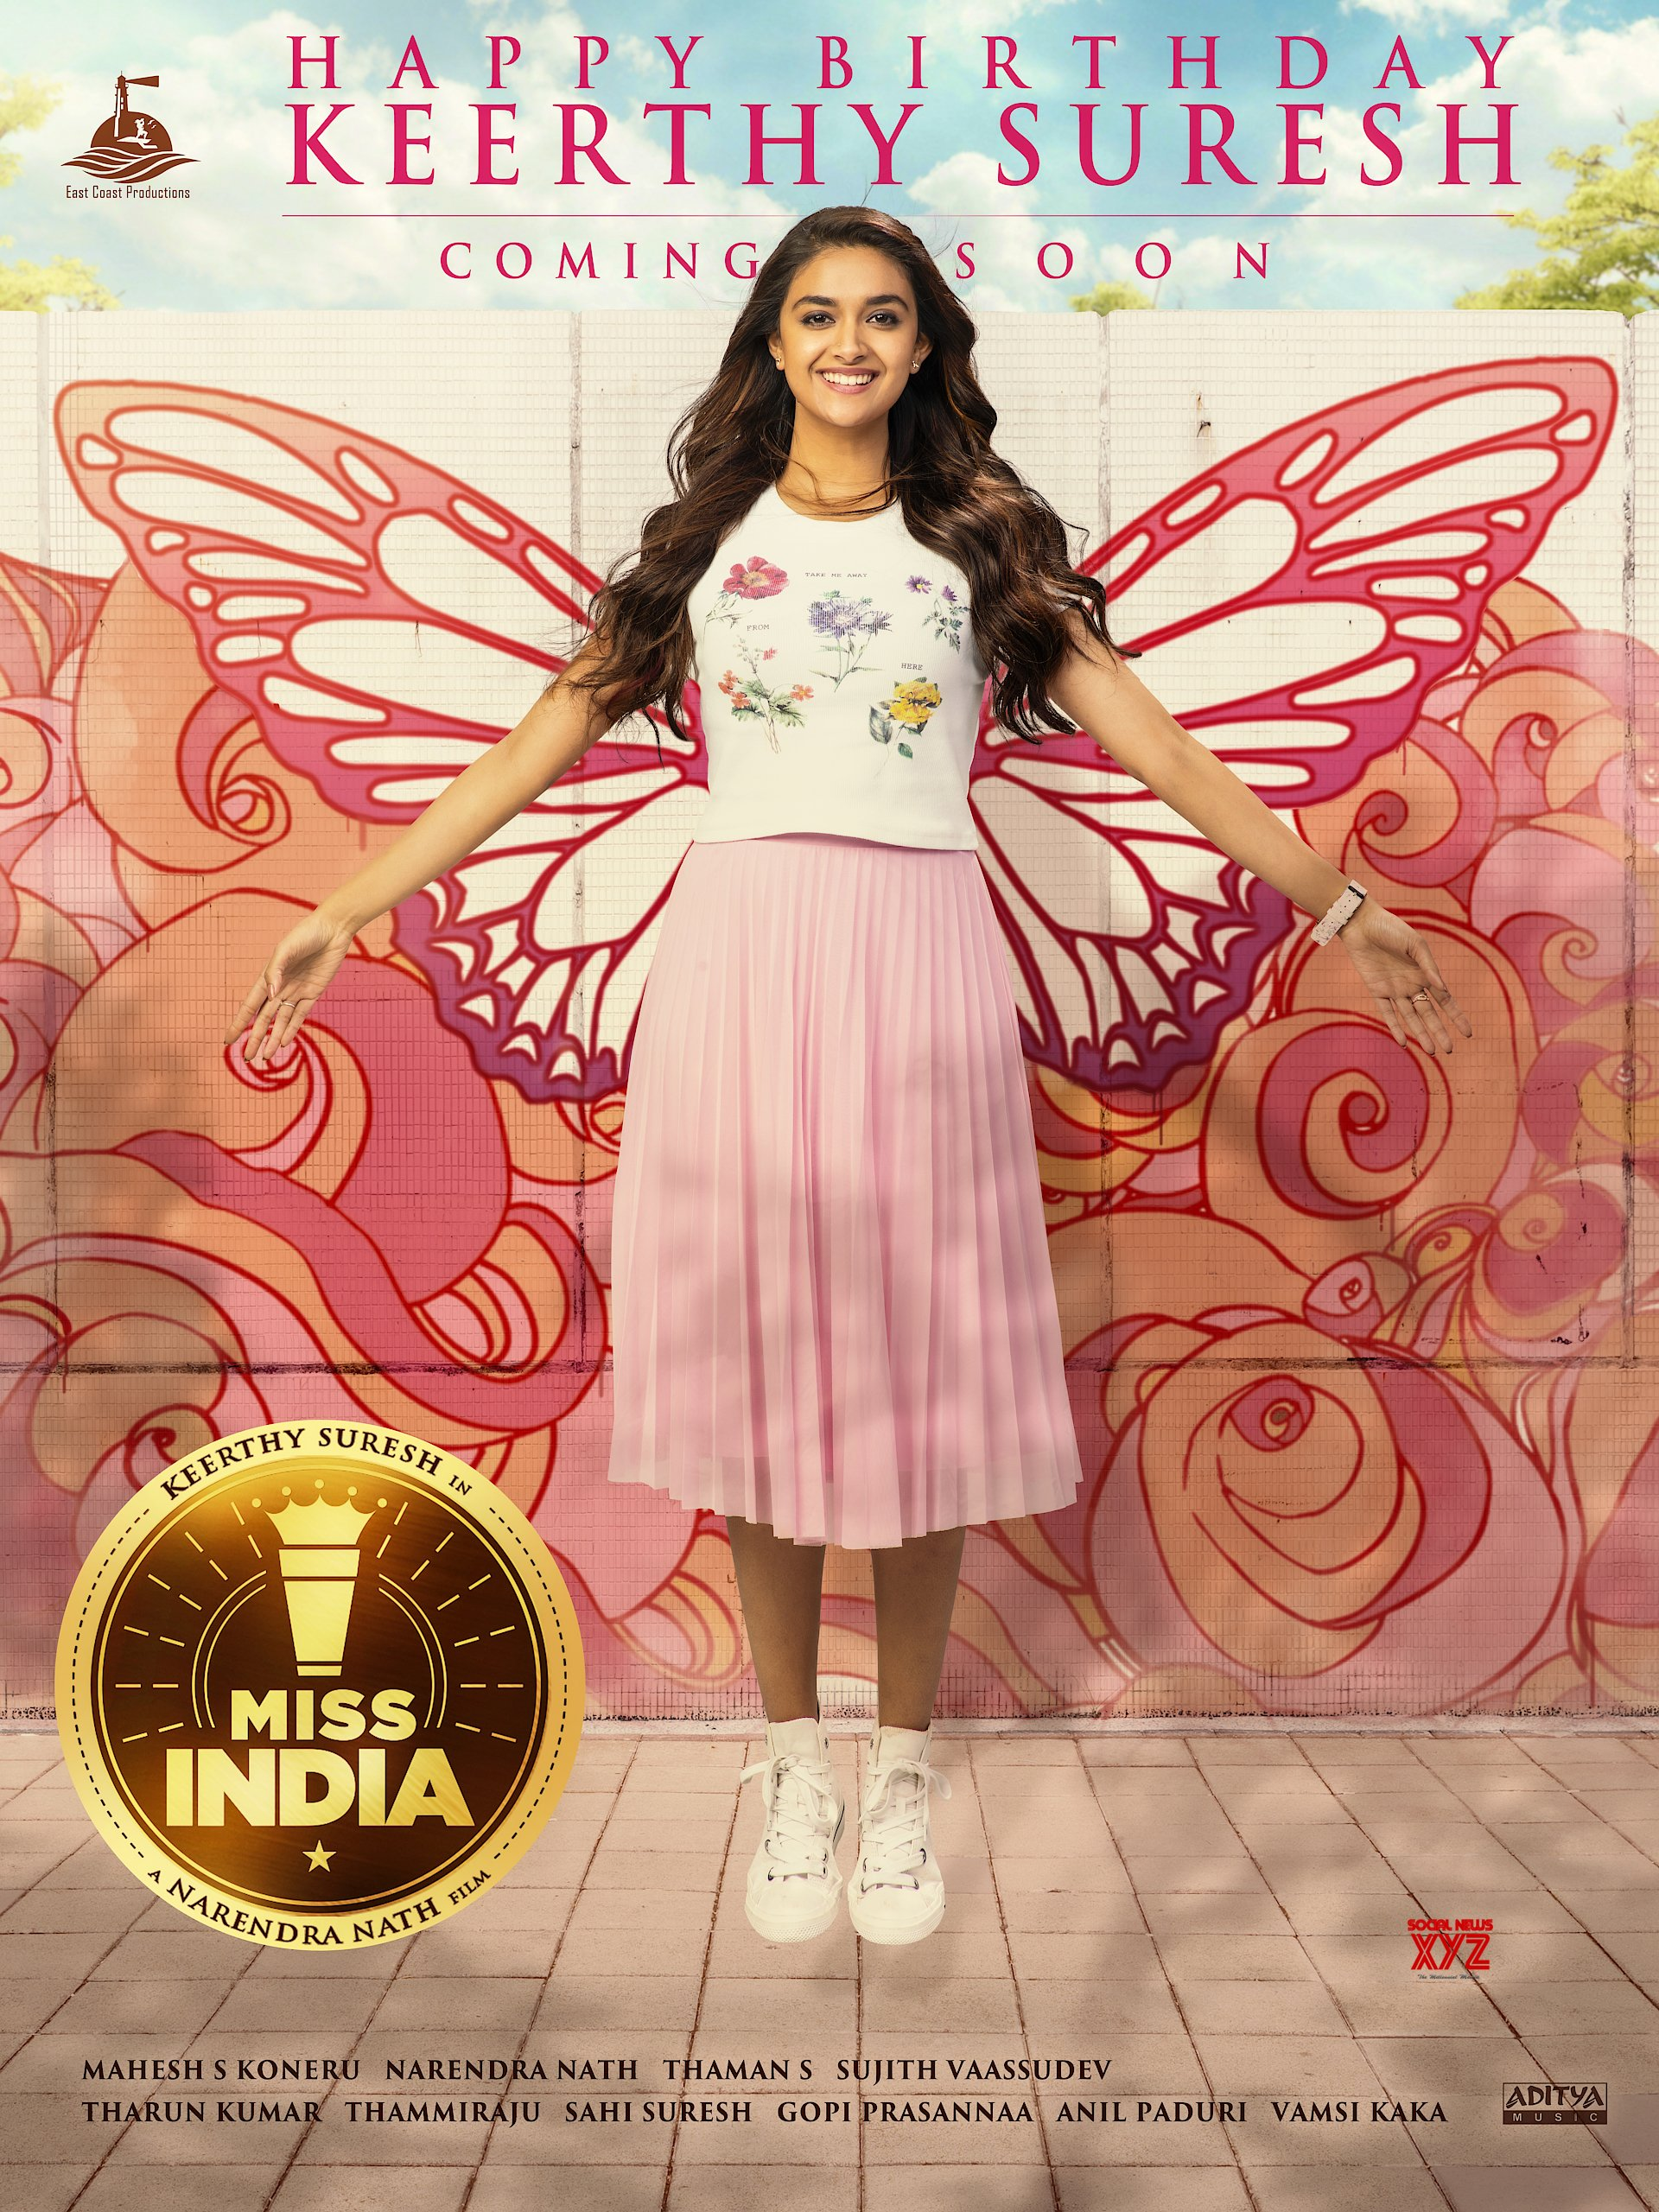 Keerthy Suresh Birthday Wishes Poster And Released By Miss India Movie Team